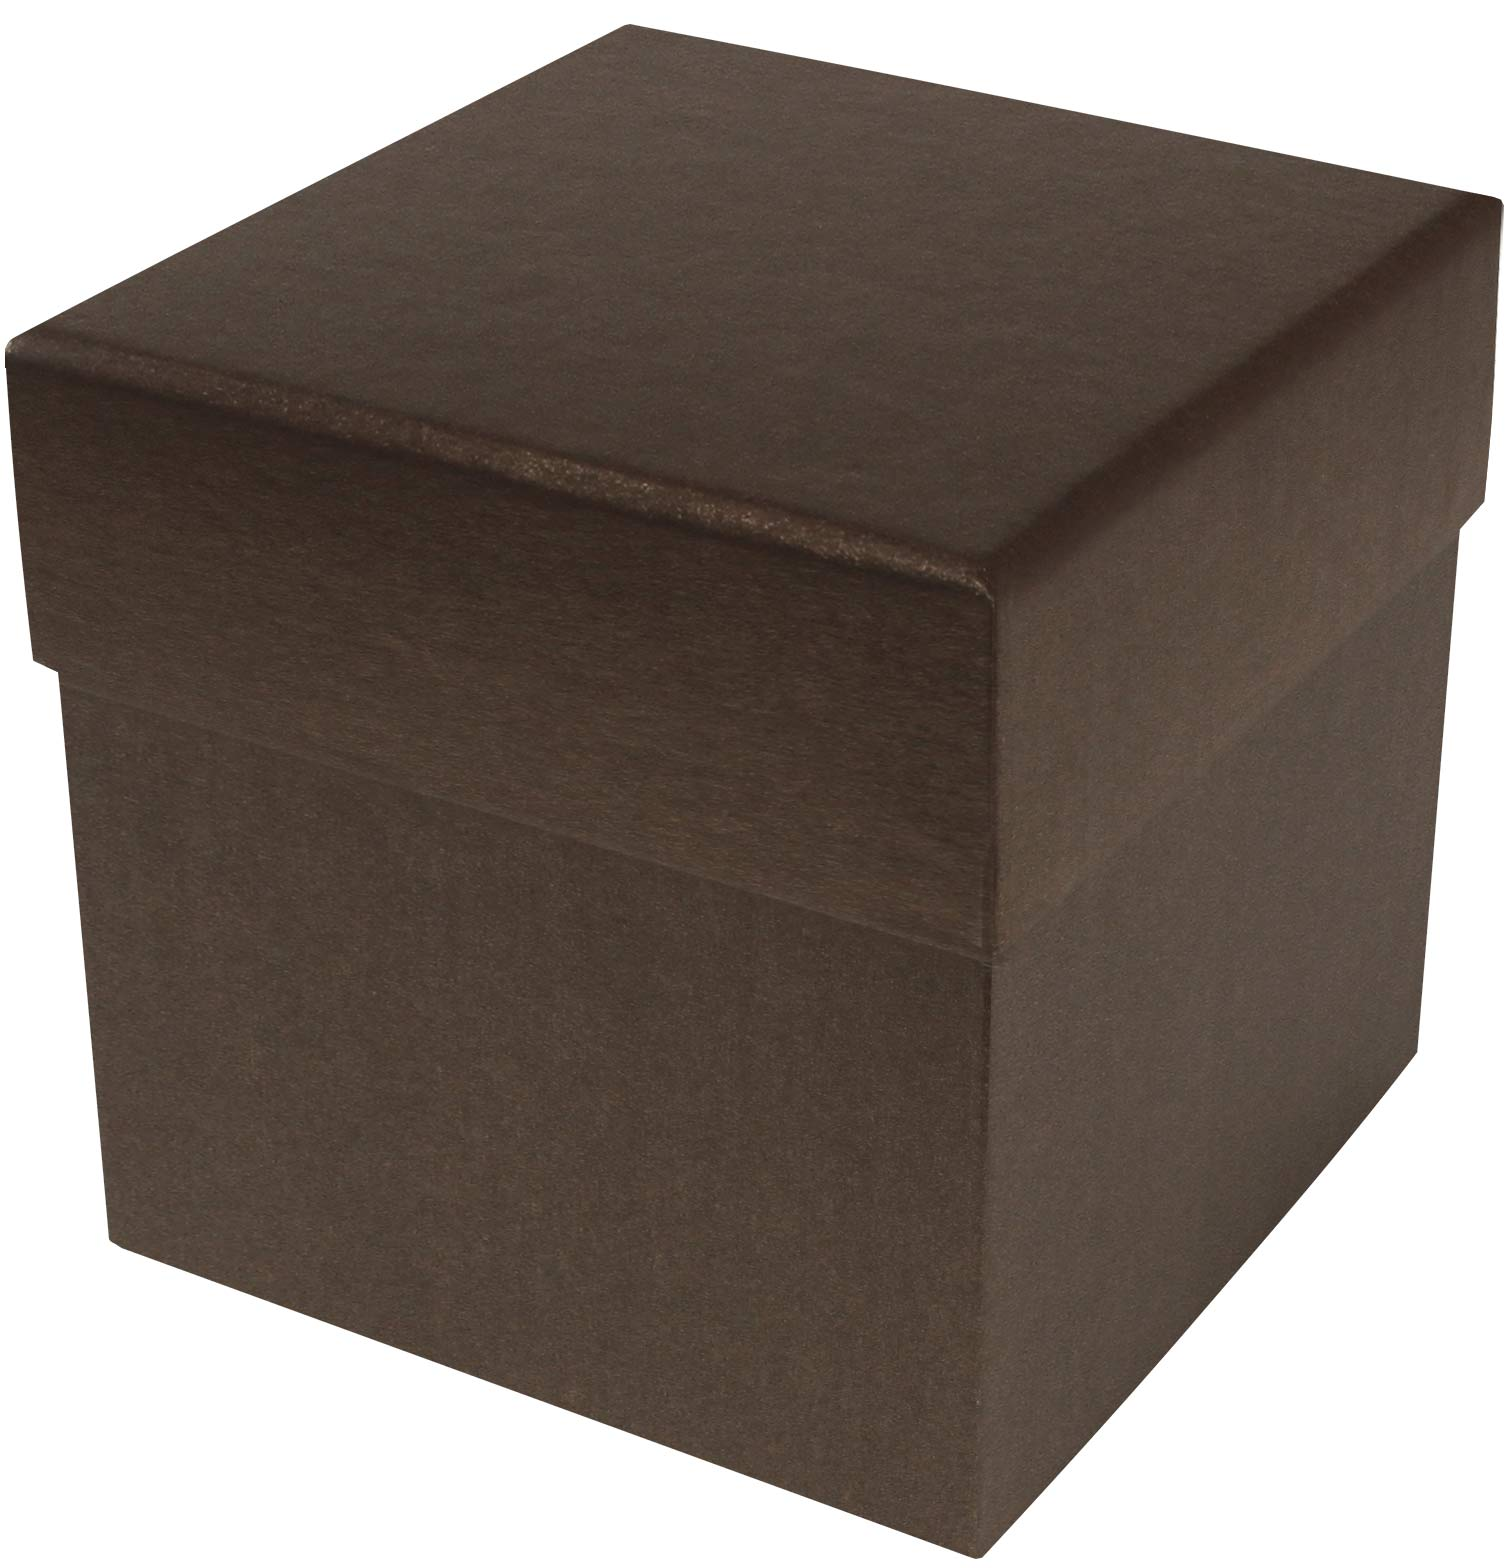 Rigid Set Up Box Cube 4 Tier Deco Bronze Qty Case 12